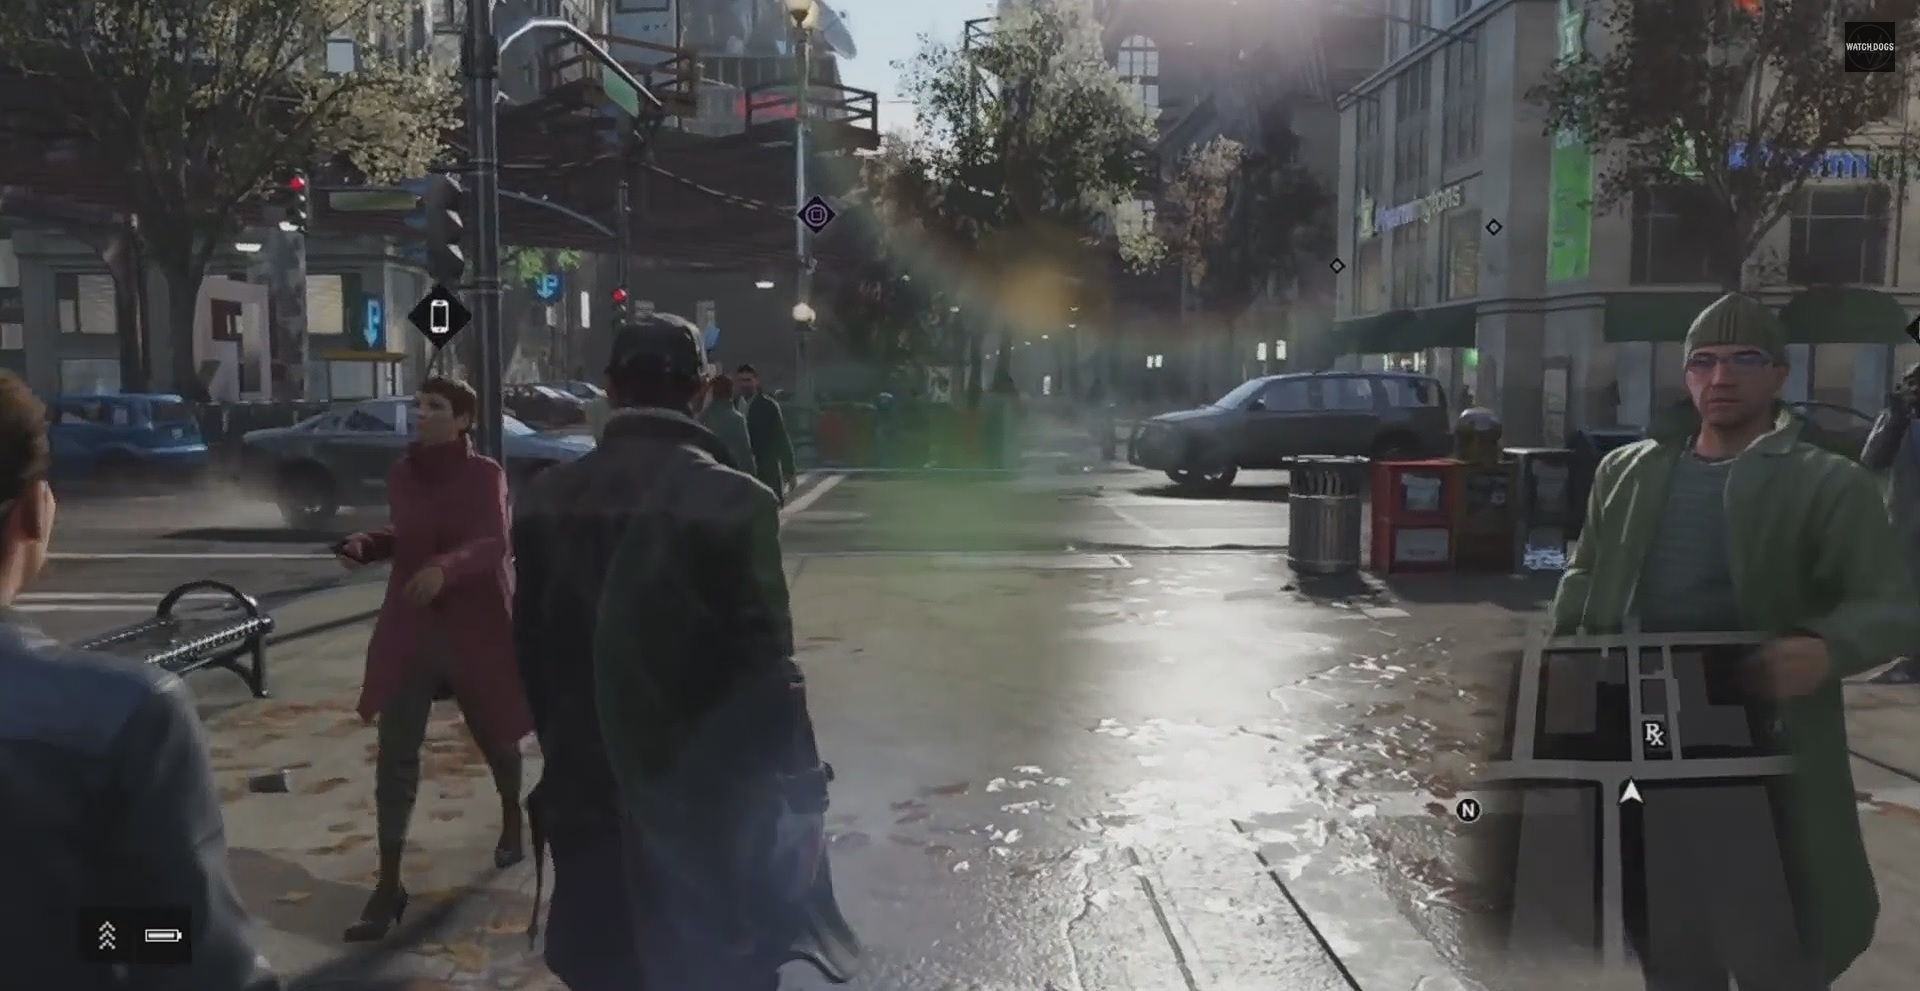 https://cdn.shazoo.ru/67896_6Gi5HpPQgU_watch_dogs_city_june_2013.jpg